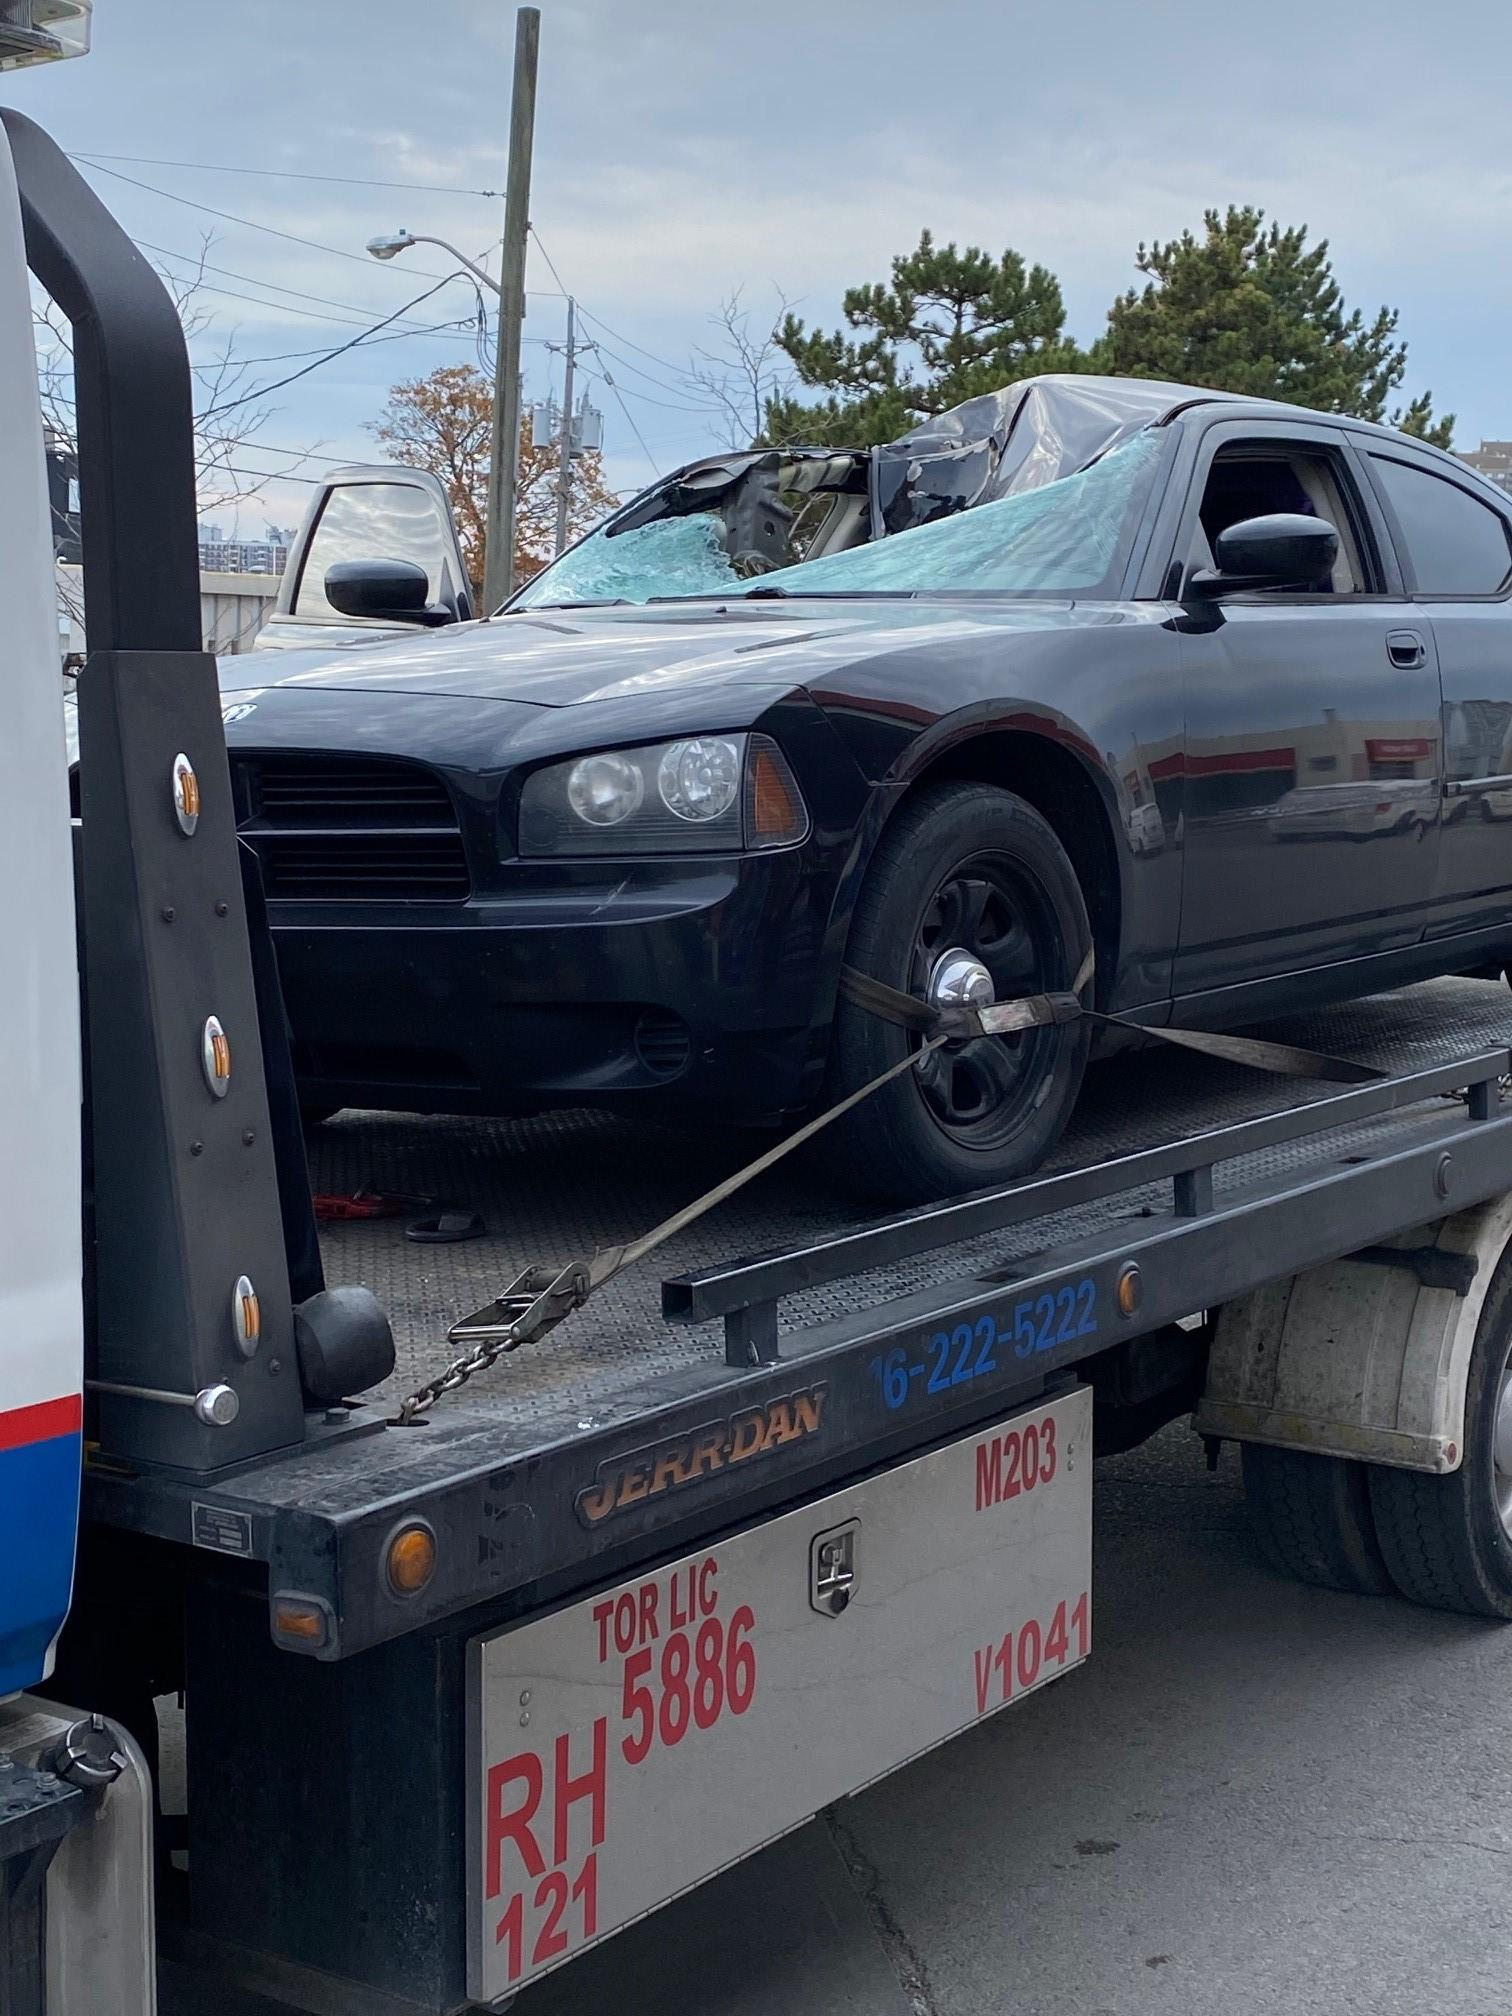 The Dodge Charger struck by a flying tire